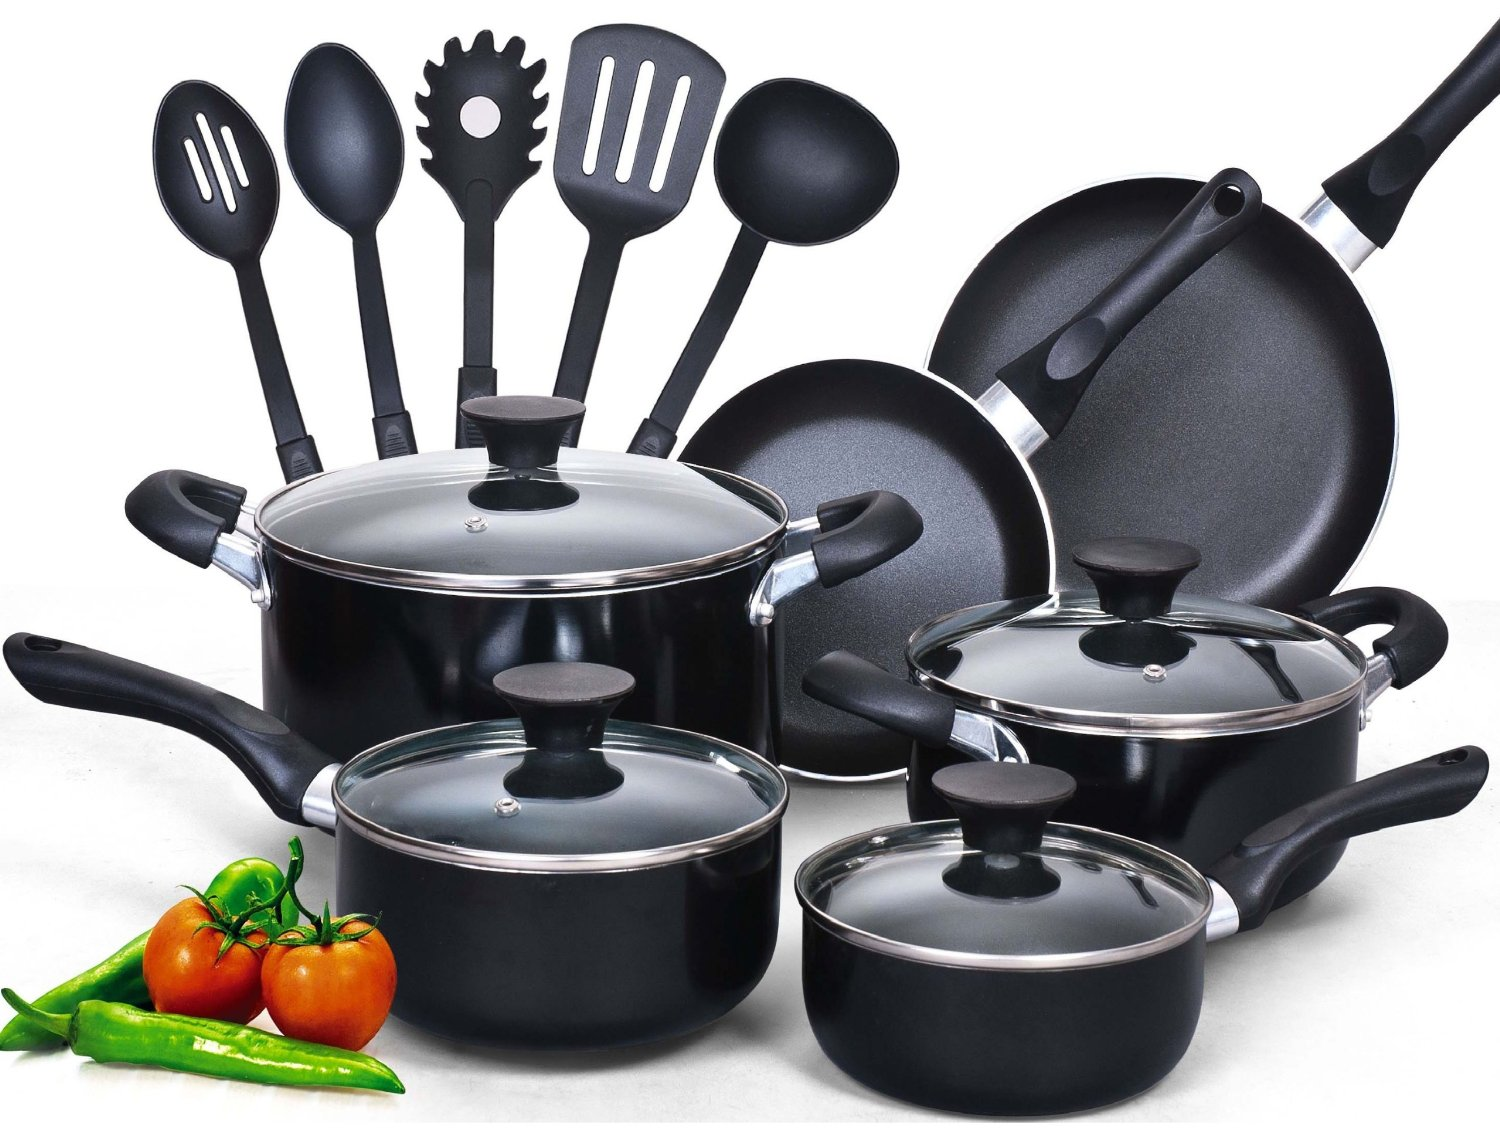 How to Care for your Nonstick Cookware to extend the lifespan